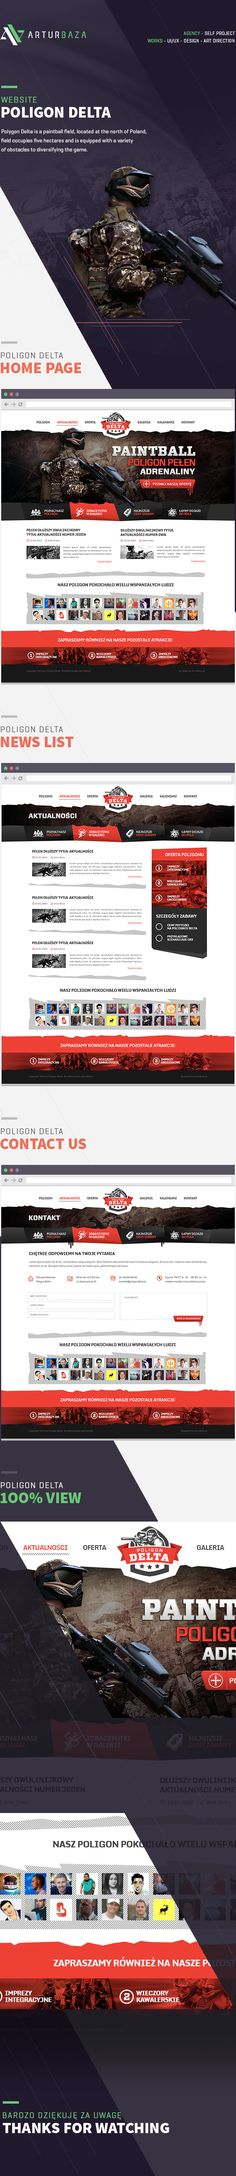 Poligon Delta - Paintball website on Behance